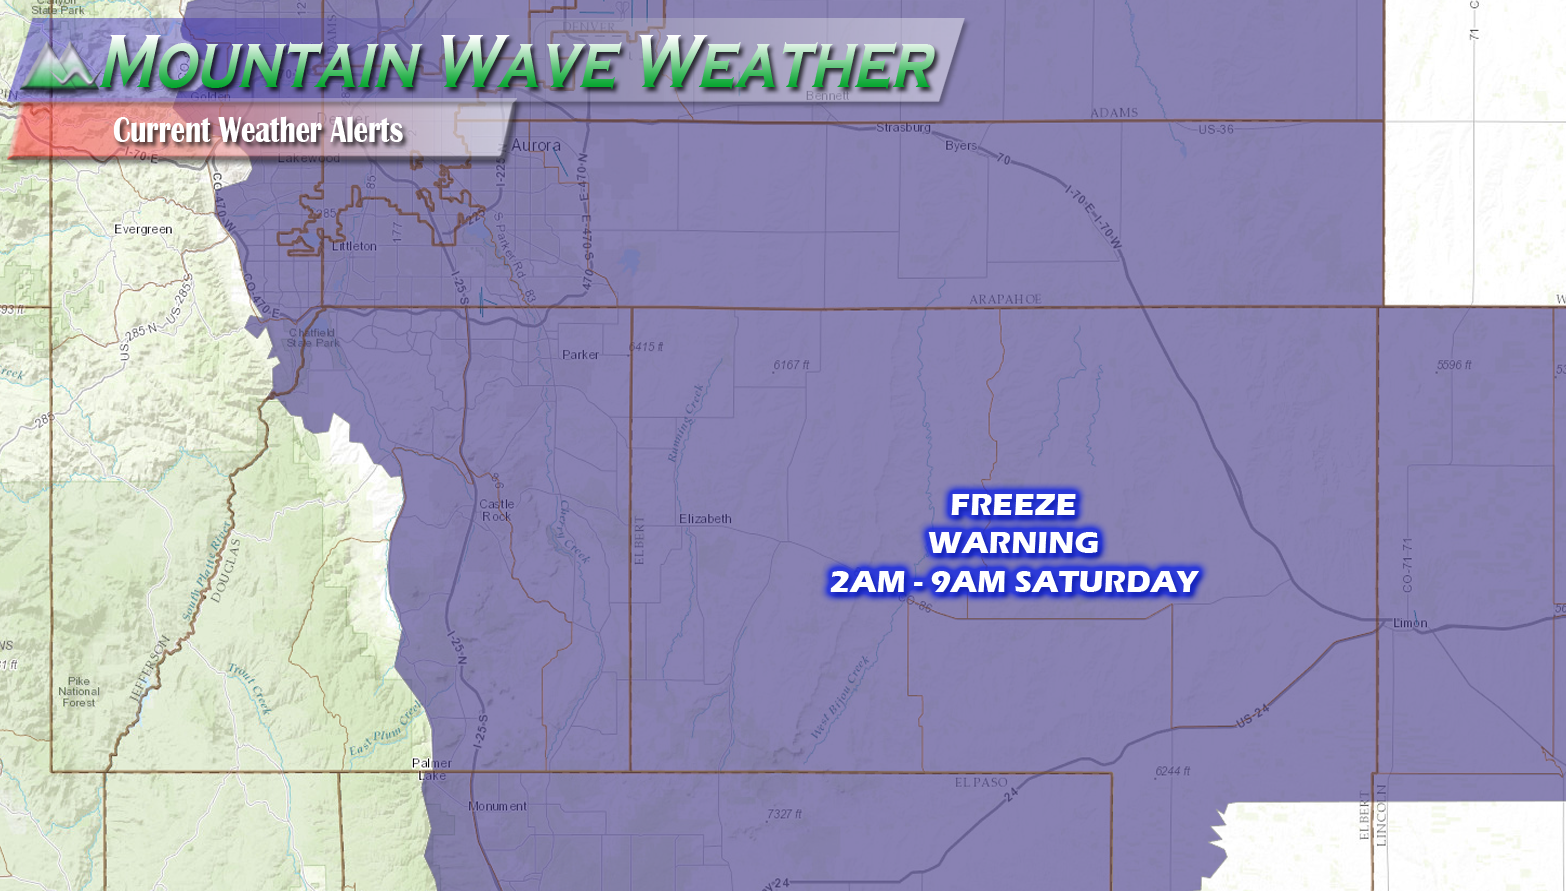 NWS Issues Freeze Warning for Front Range of Colorado